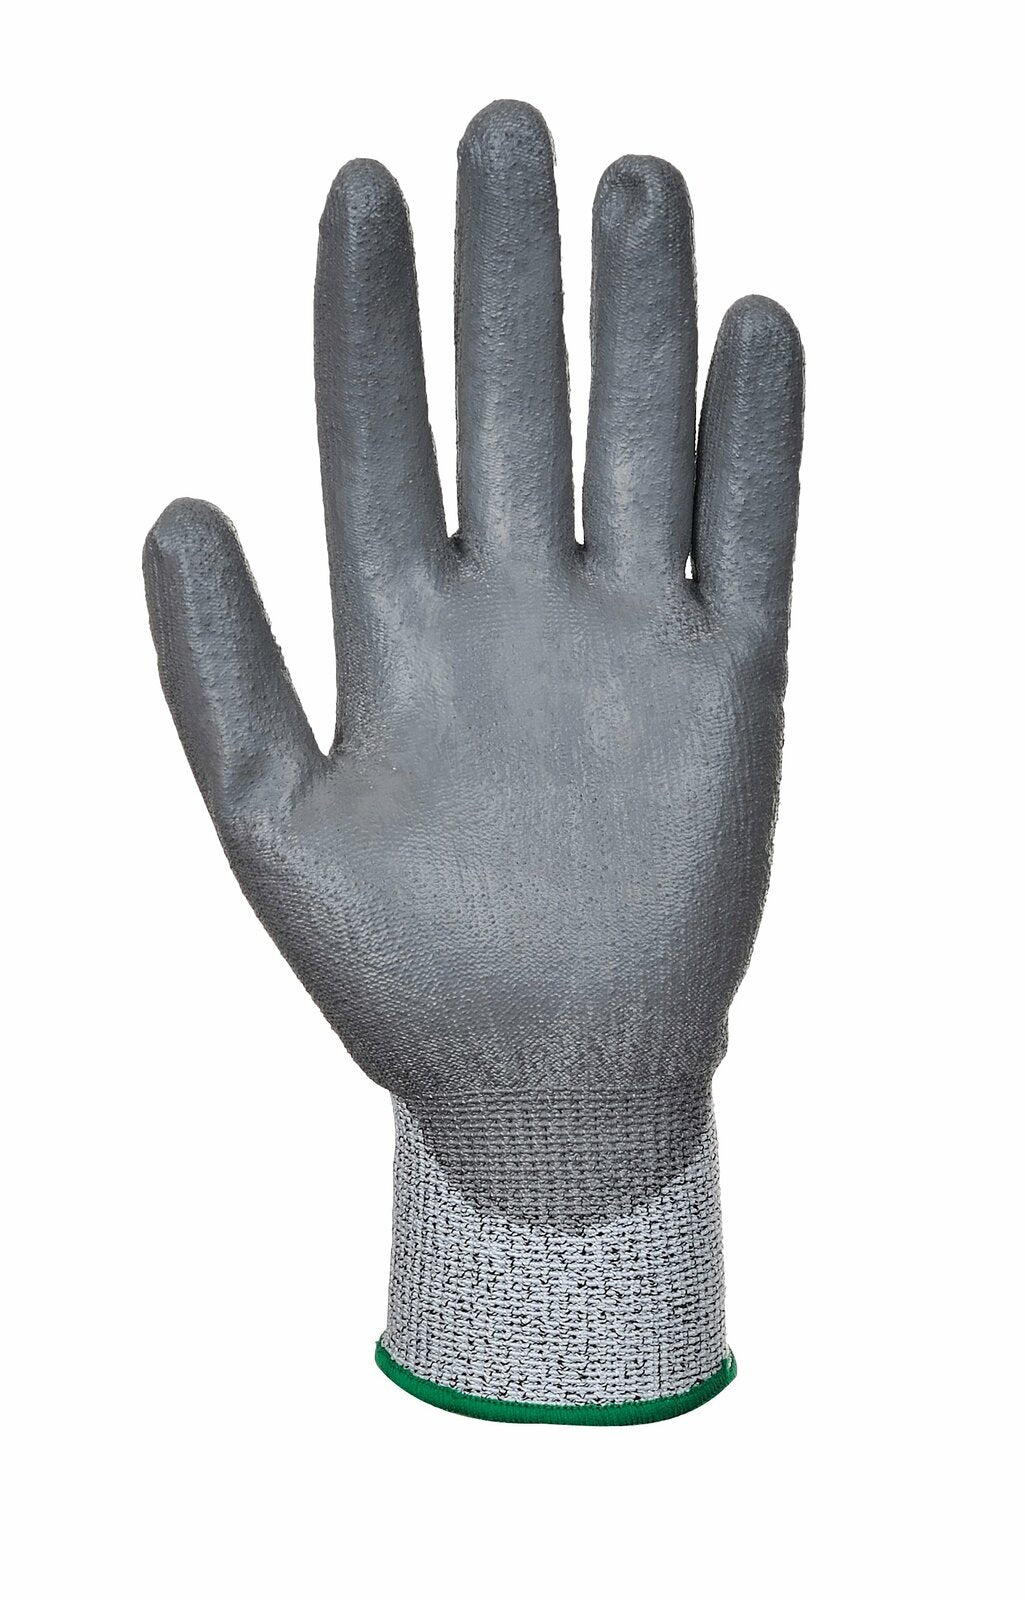 A622 MR Cut PU Palm Glove